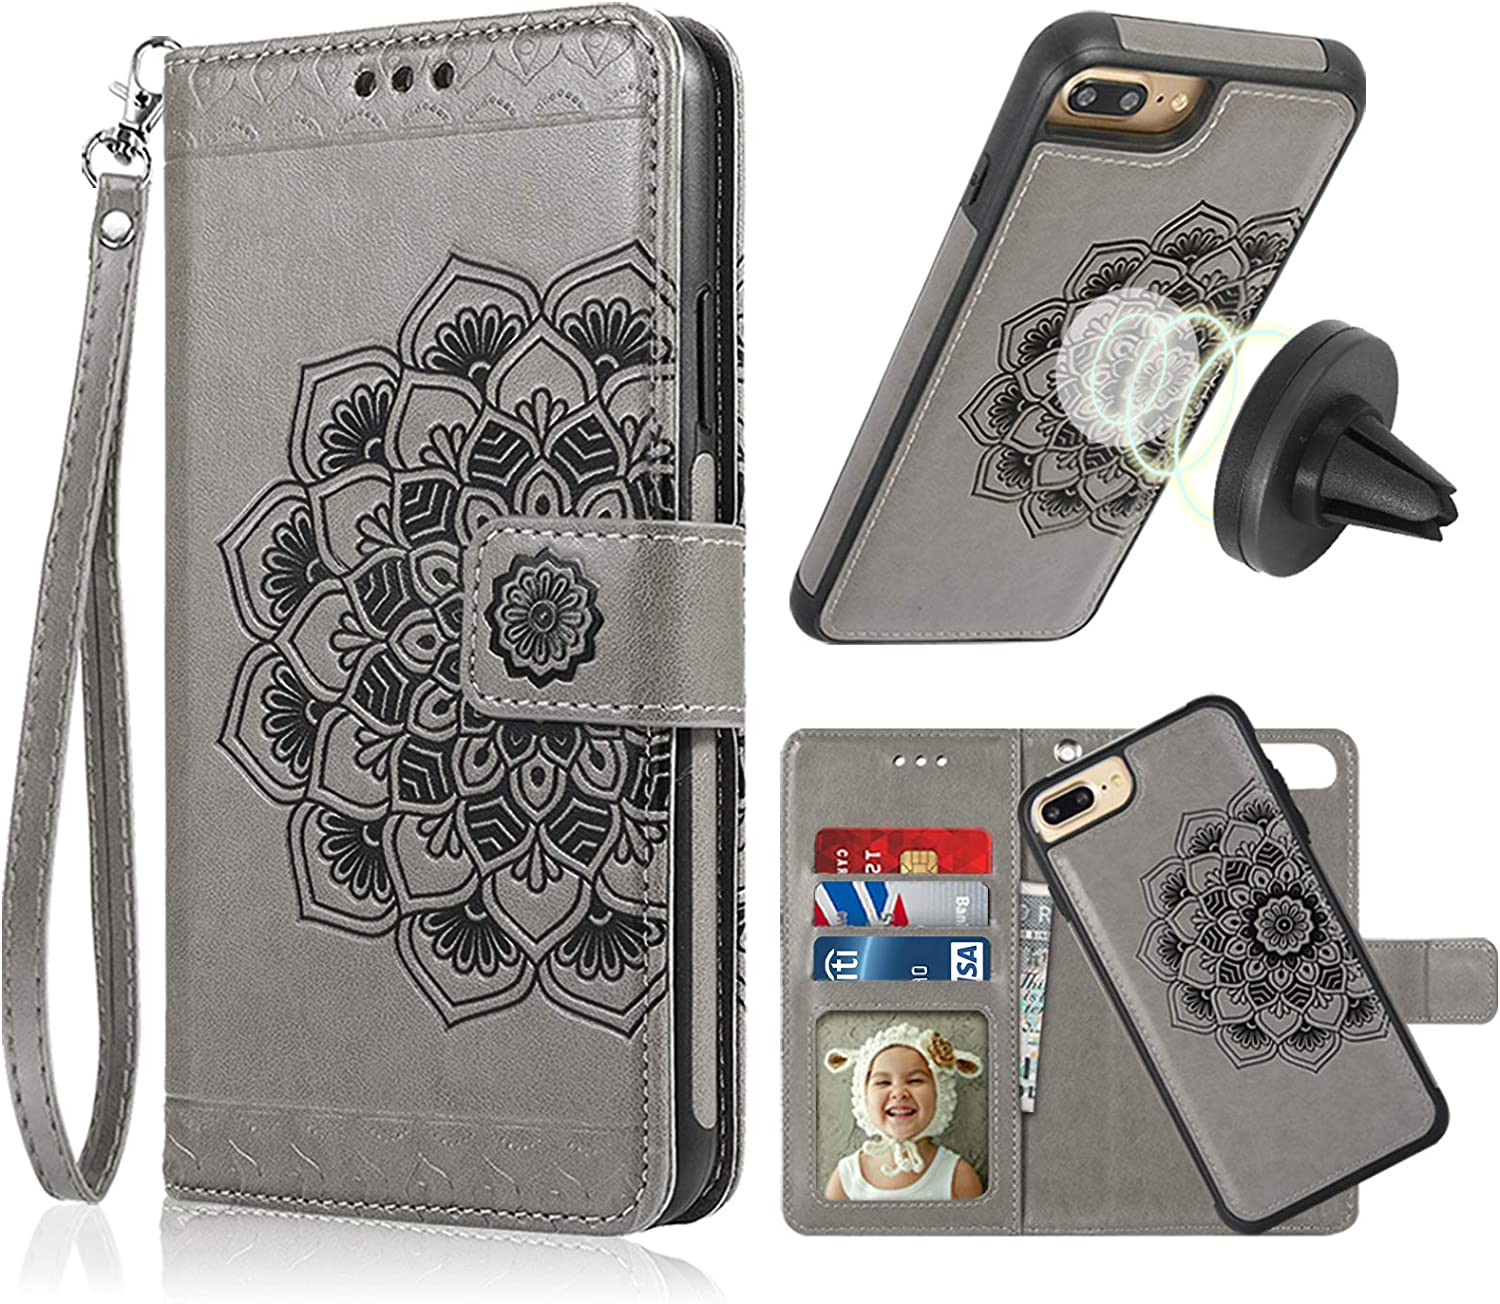 CASEOWL iPhone 8 Plus Wallet Case, iPhone 8 Plus Case Magnetic Detachable Premium Mandala Flower Embossed Leather Lanyard Wallet with Card Slots Holder, Hand Strap, Compatible with Car Mount [Gray]